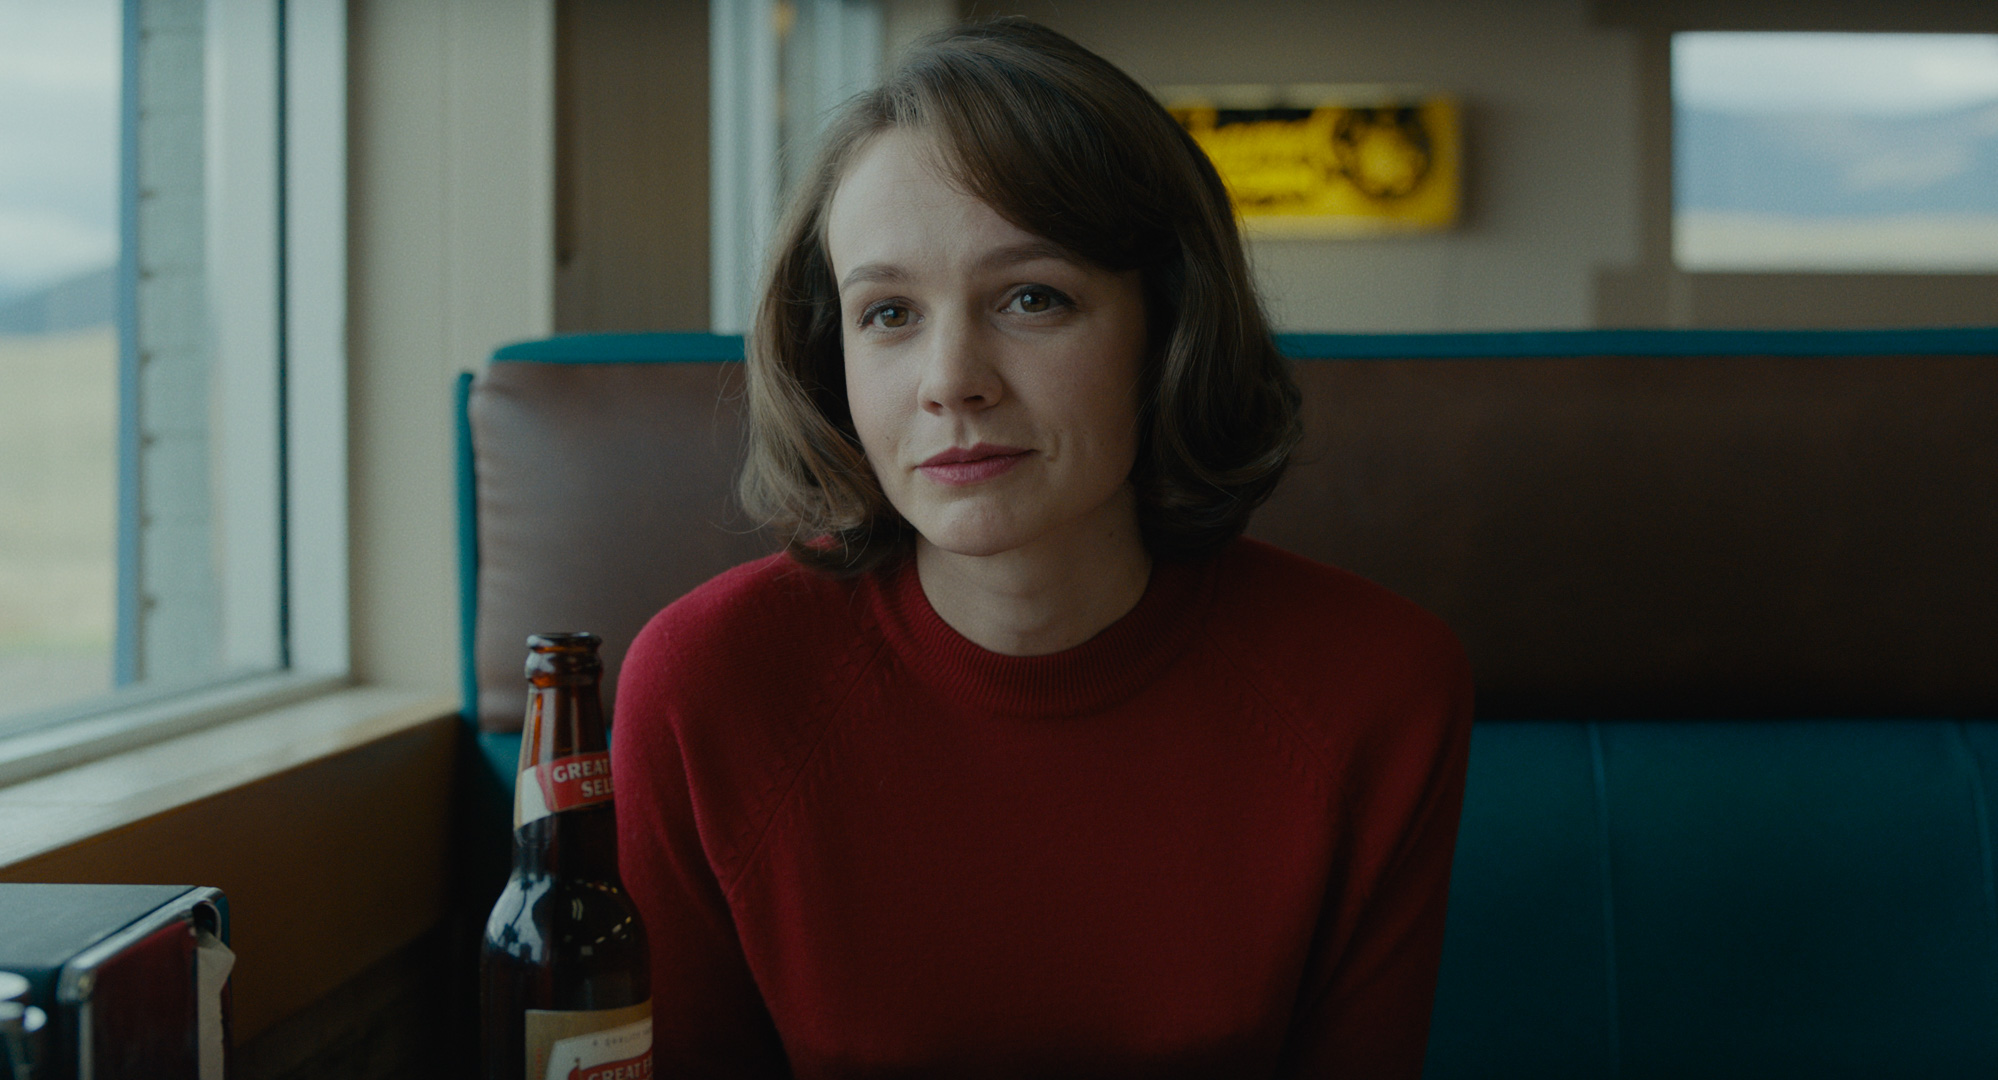 Carey Mulligan appears in <i>Wildlife</i> by Paul Dano, an official selection of the U.S. Dramatic Competition at the 2018 Sundance Film Festival. Courtesy of Sundance Institute. All photos are copyrighted and may be used by press only for the purpose of news or editorial coverage of Sundance Institute programs. Photos must be accompanied by a credit to the photographer and/or 'Courtesy of Sundance Institute.' Unauthorized use, alteration, reproduction or sale of logos and/or photos is strictly prohibited.